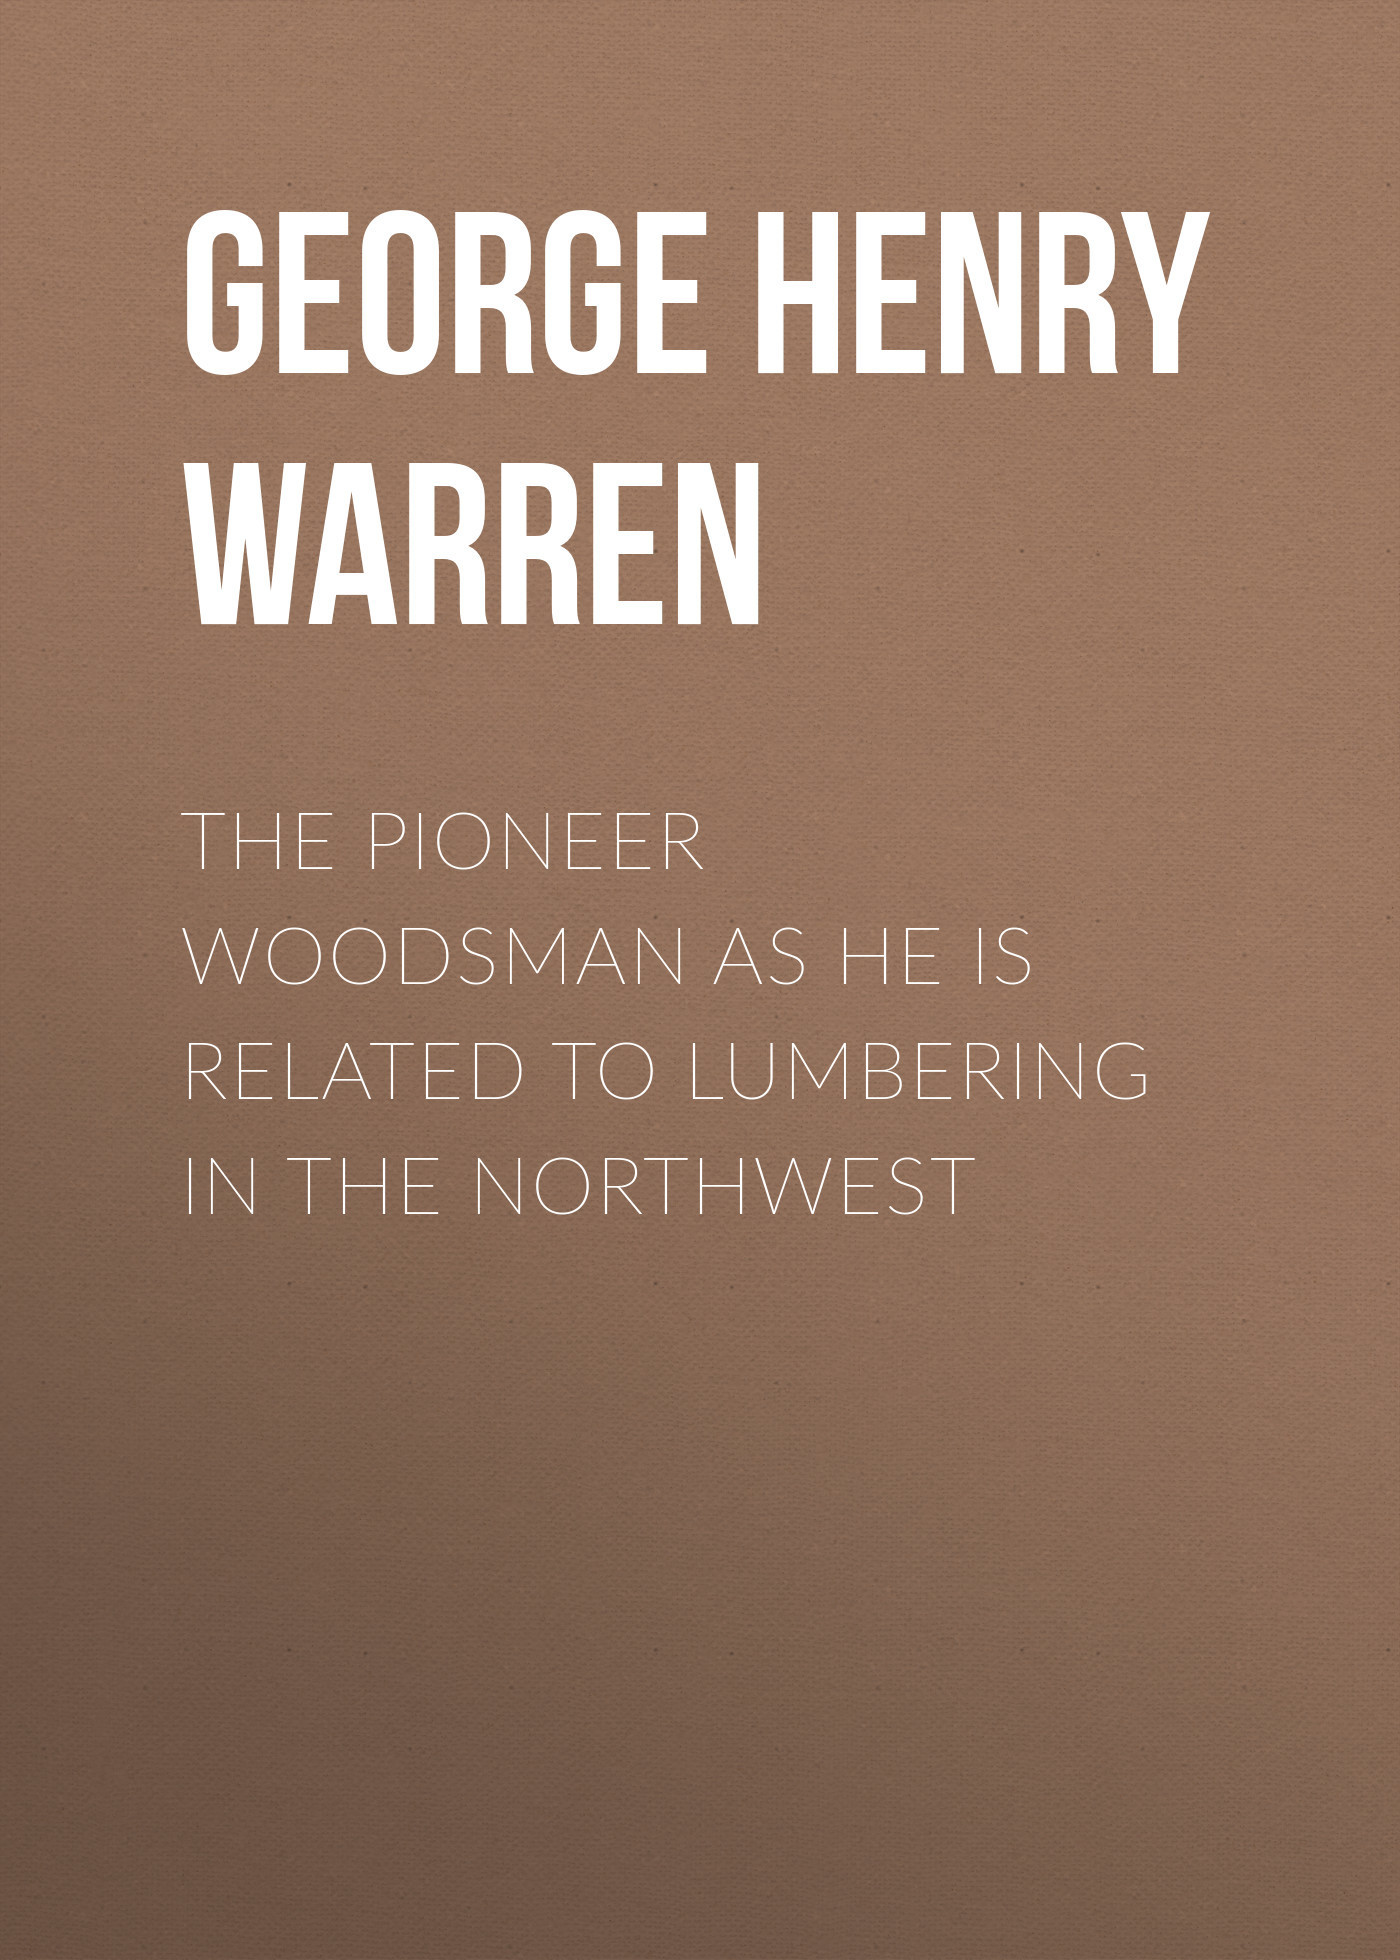 George Henry Warren The Pioneer Woodsman as He Is Related to Lumbering in the Northwest